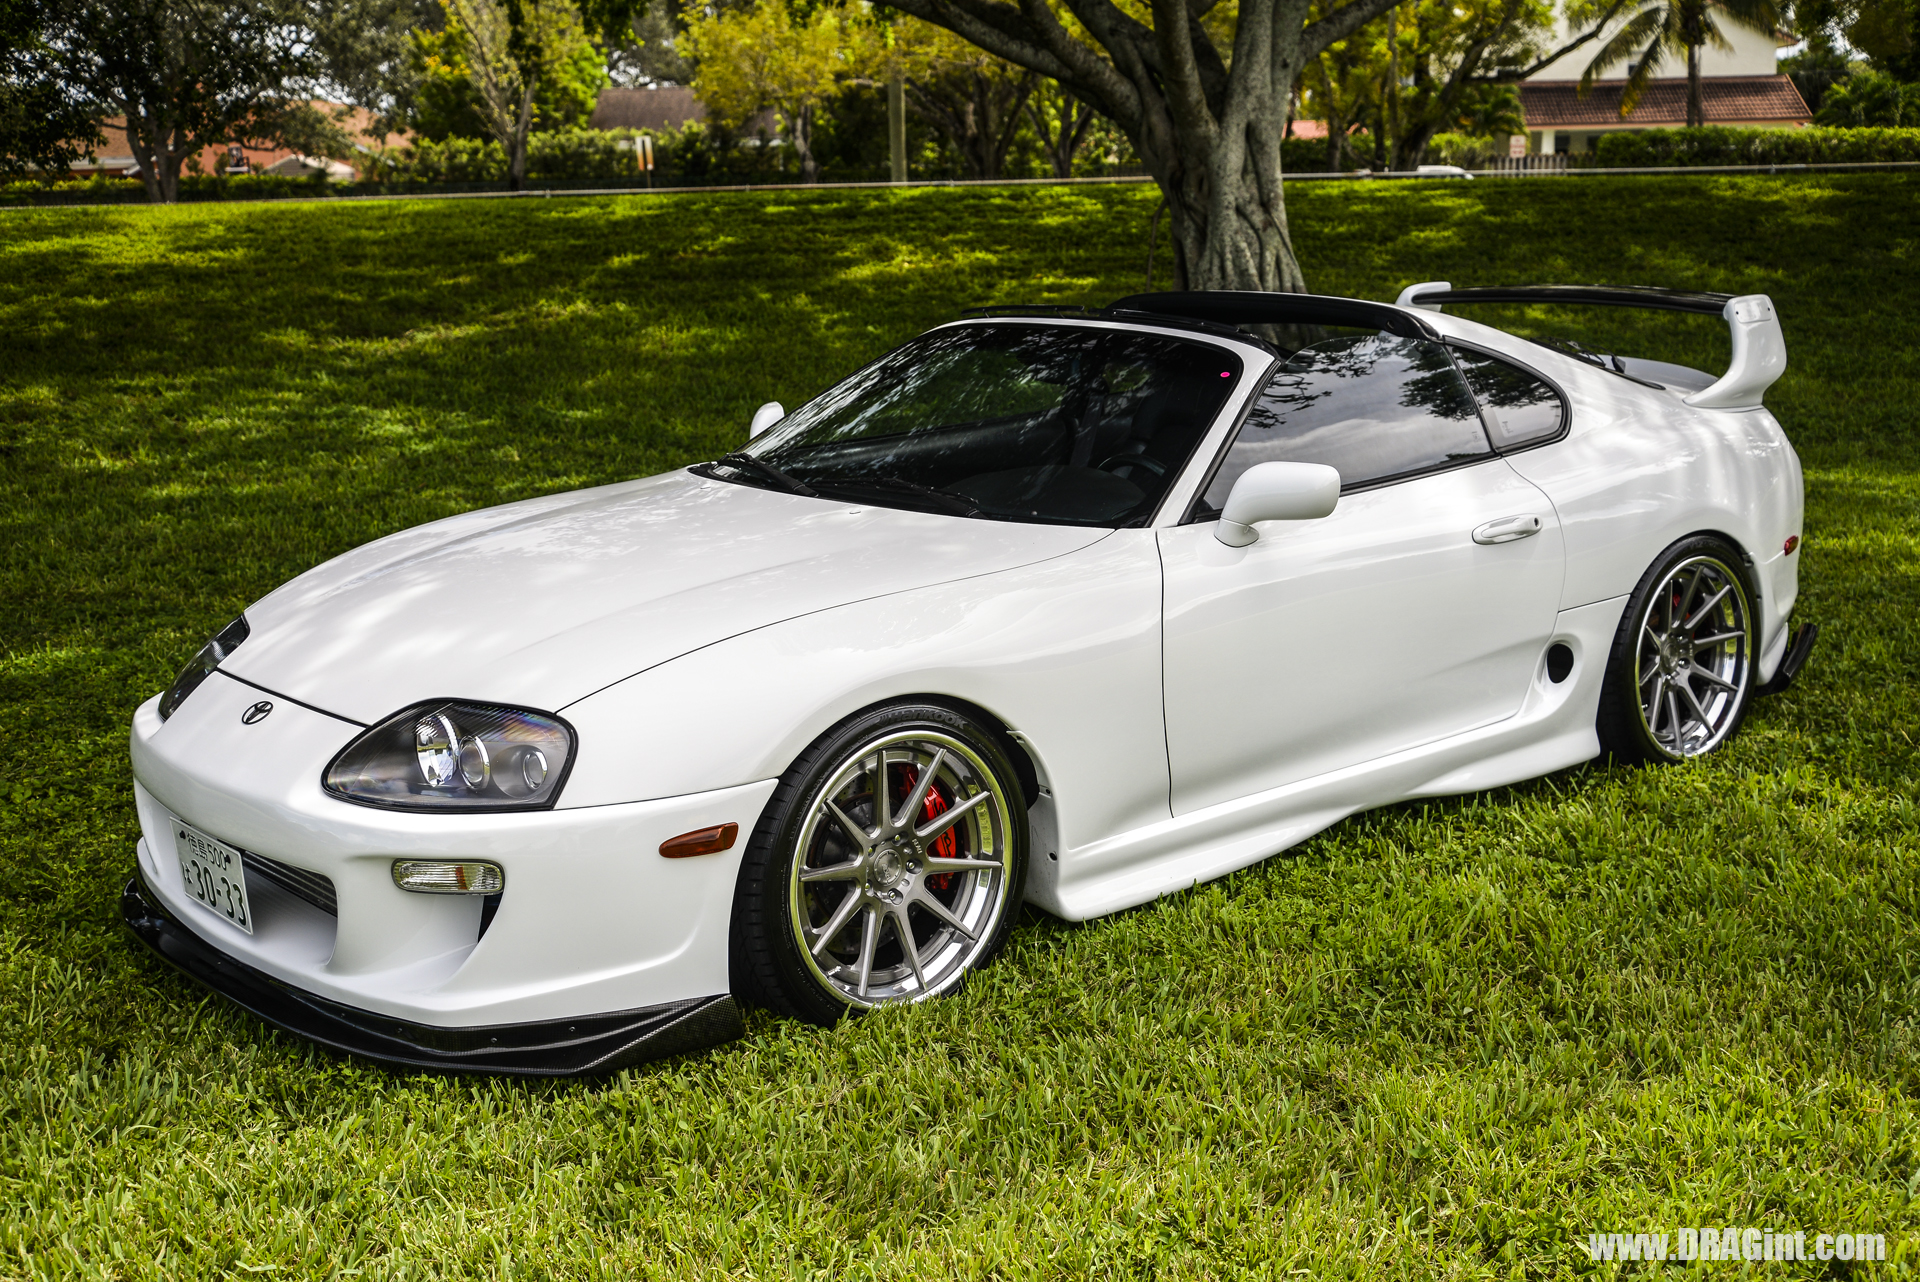 Supra For Sale >> DRAGint.com Project White Heat – Supra Turbo 6 Speed + JDM Flare + 1050 HP | DRAG International